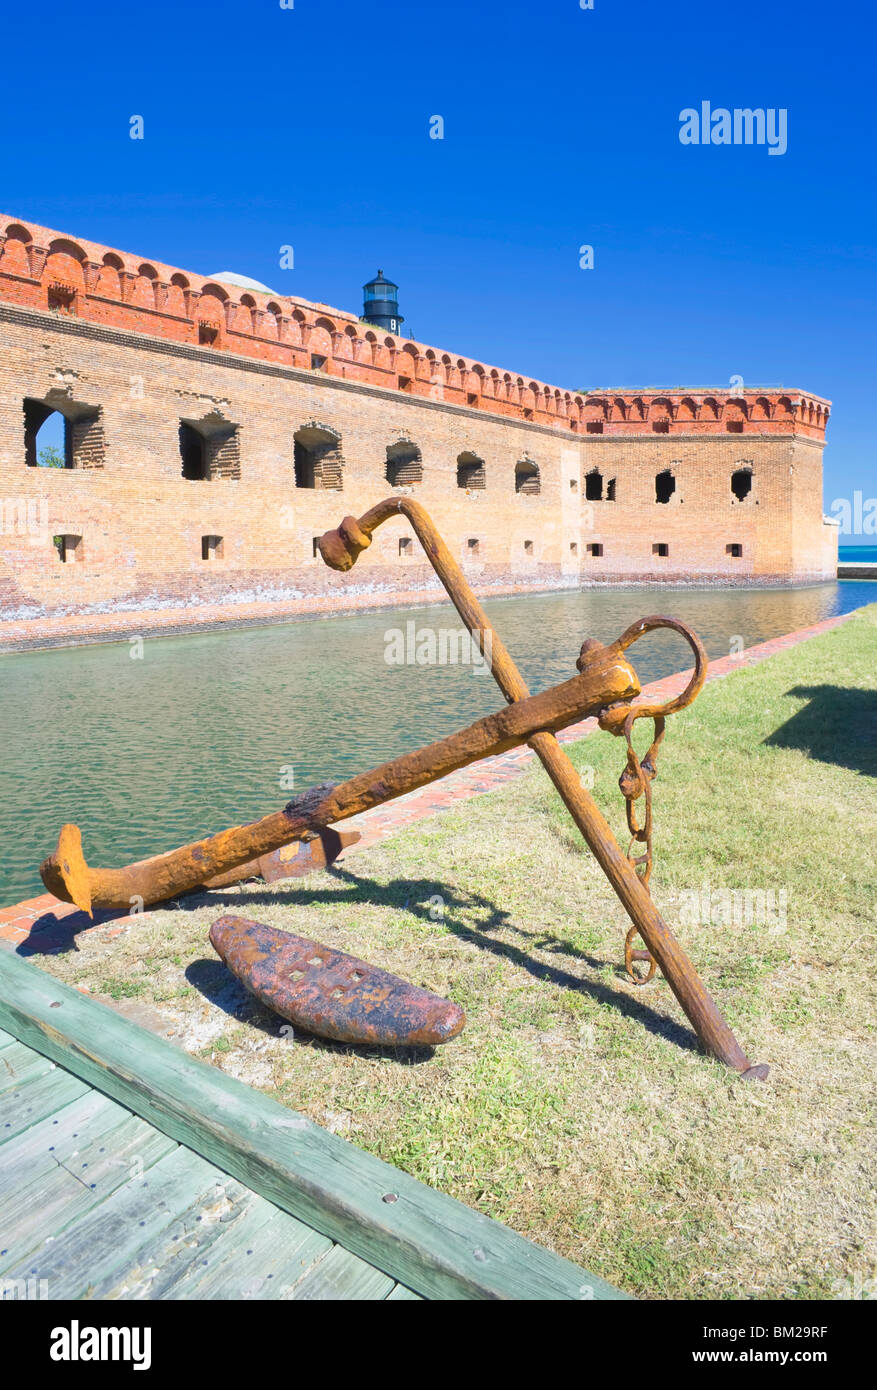 Fort Jefferson, Dry Tortugas National Park, Florida, USA - Stock Image